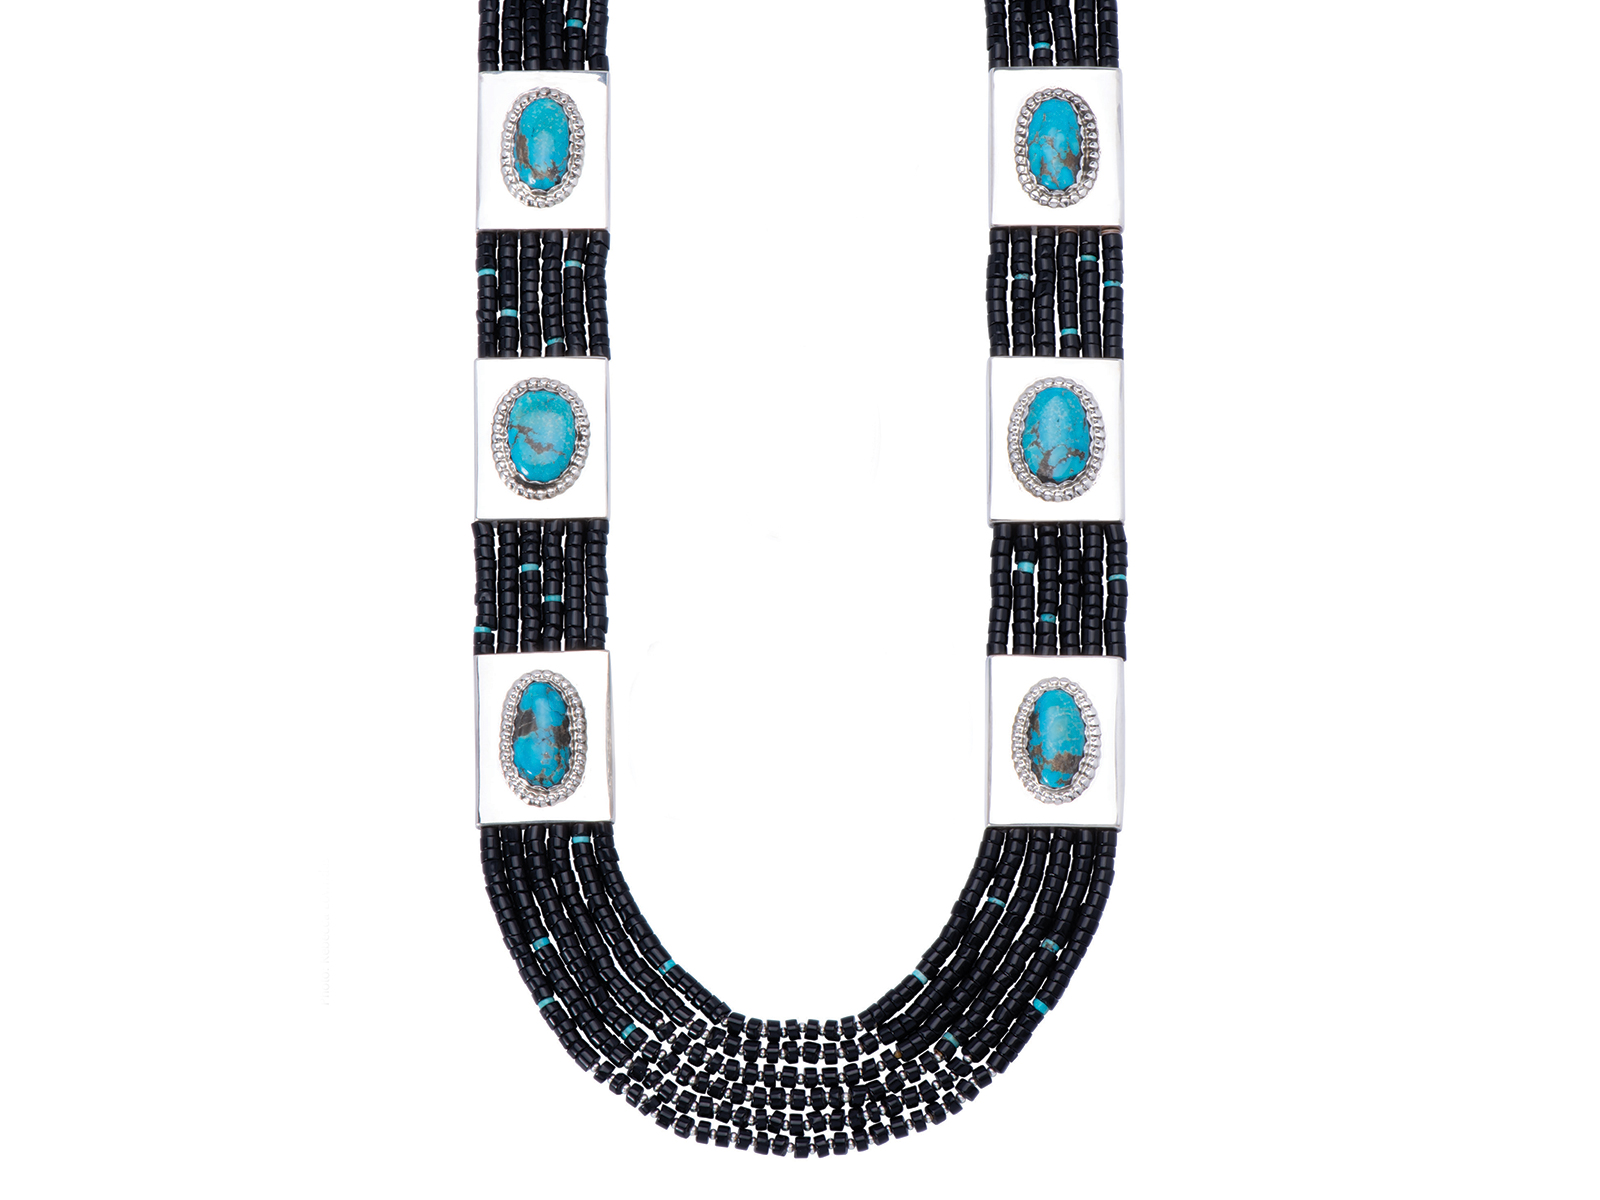 6 Strand Black Onyx Blue Gem Turquoise Necklace